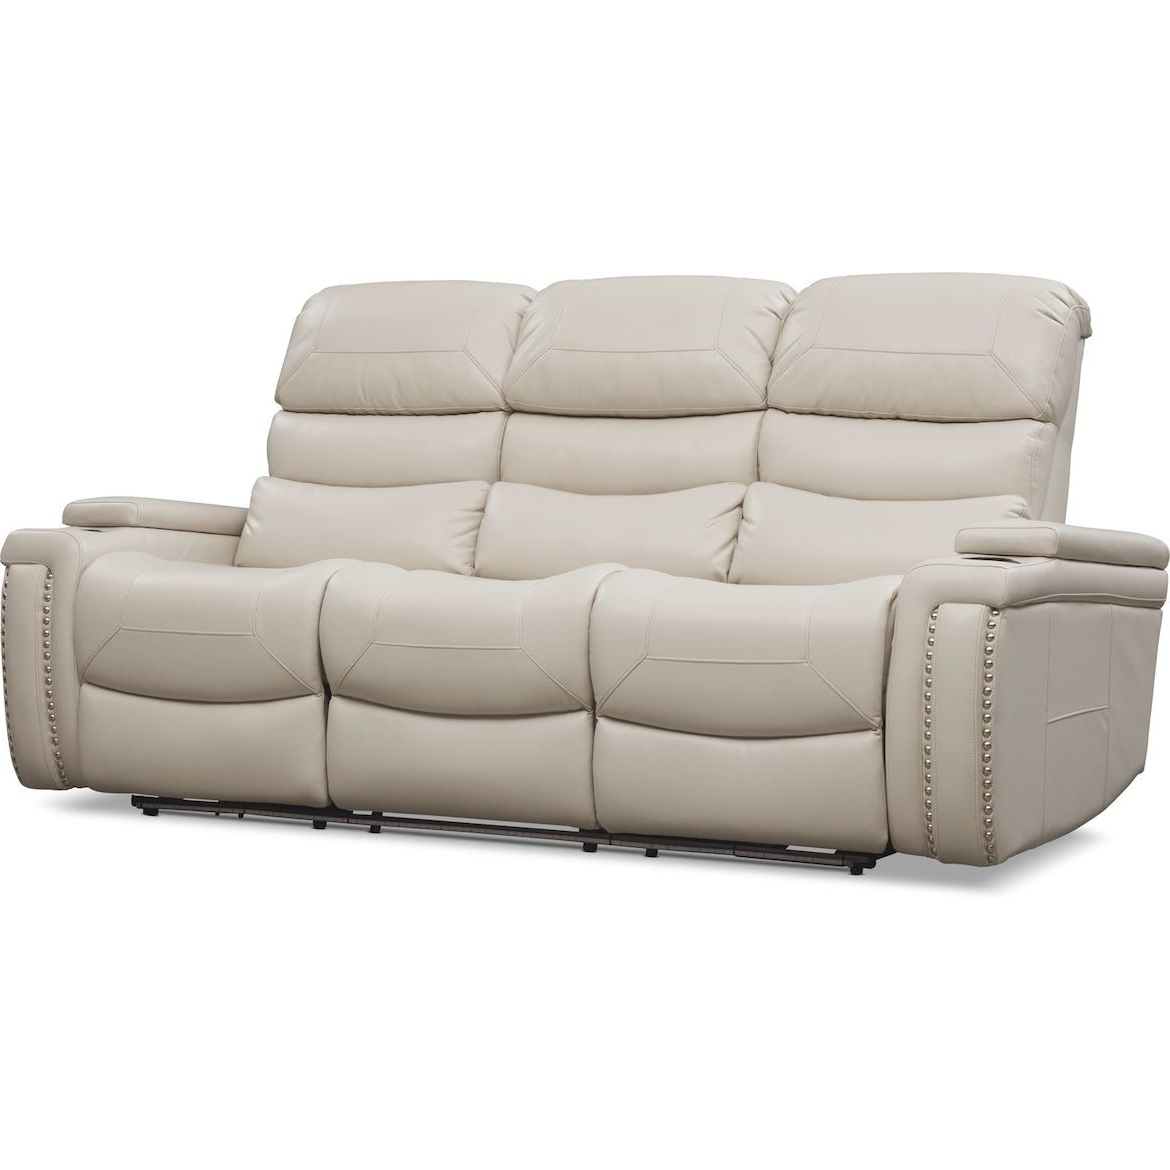 Well Known Jackson Triple Power Reclining Sofa And Recliner Set Inside Charleston Triple Power Reclining Sofas (View 3 of 15)